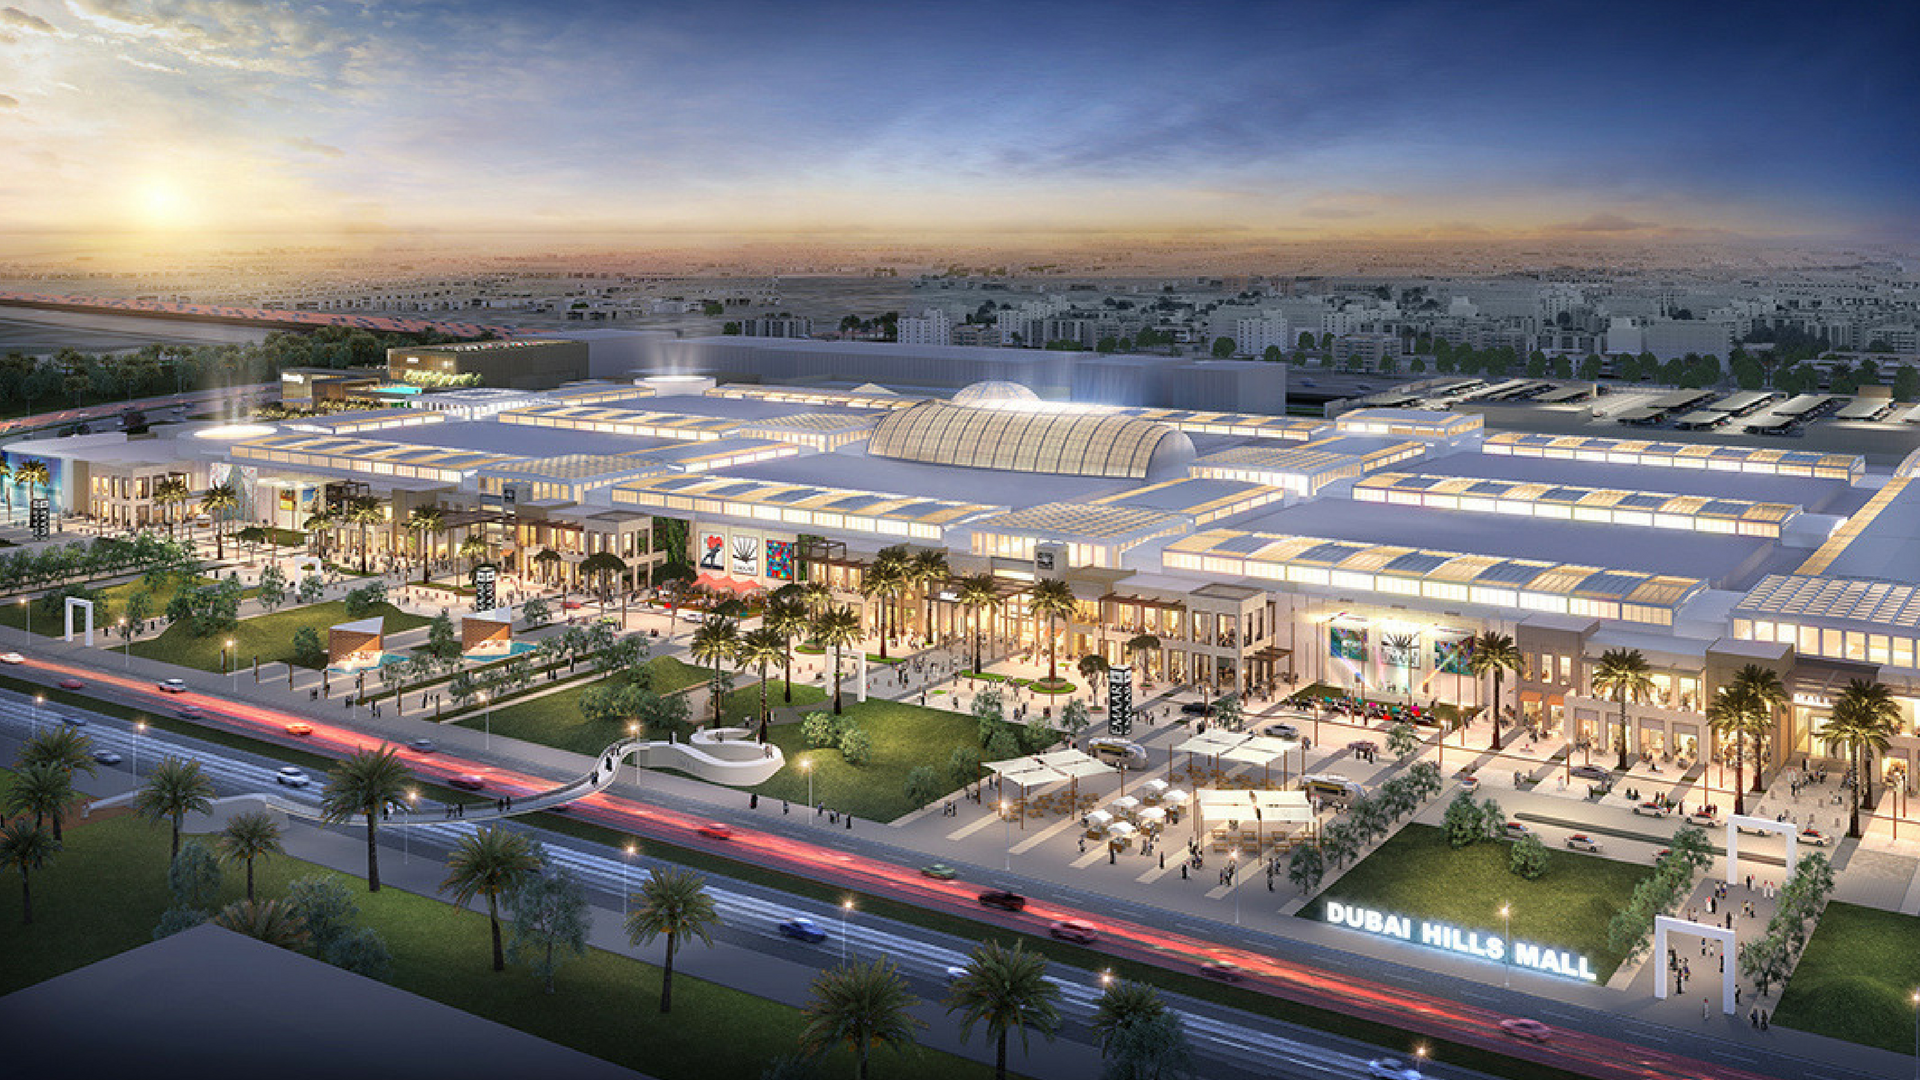 An early render of the new Dubai Hills Mall.